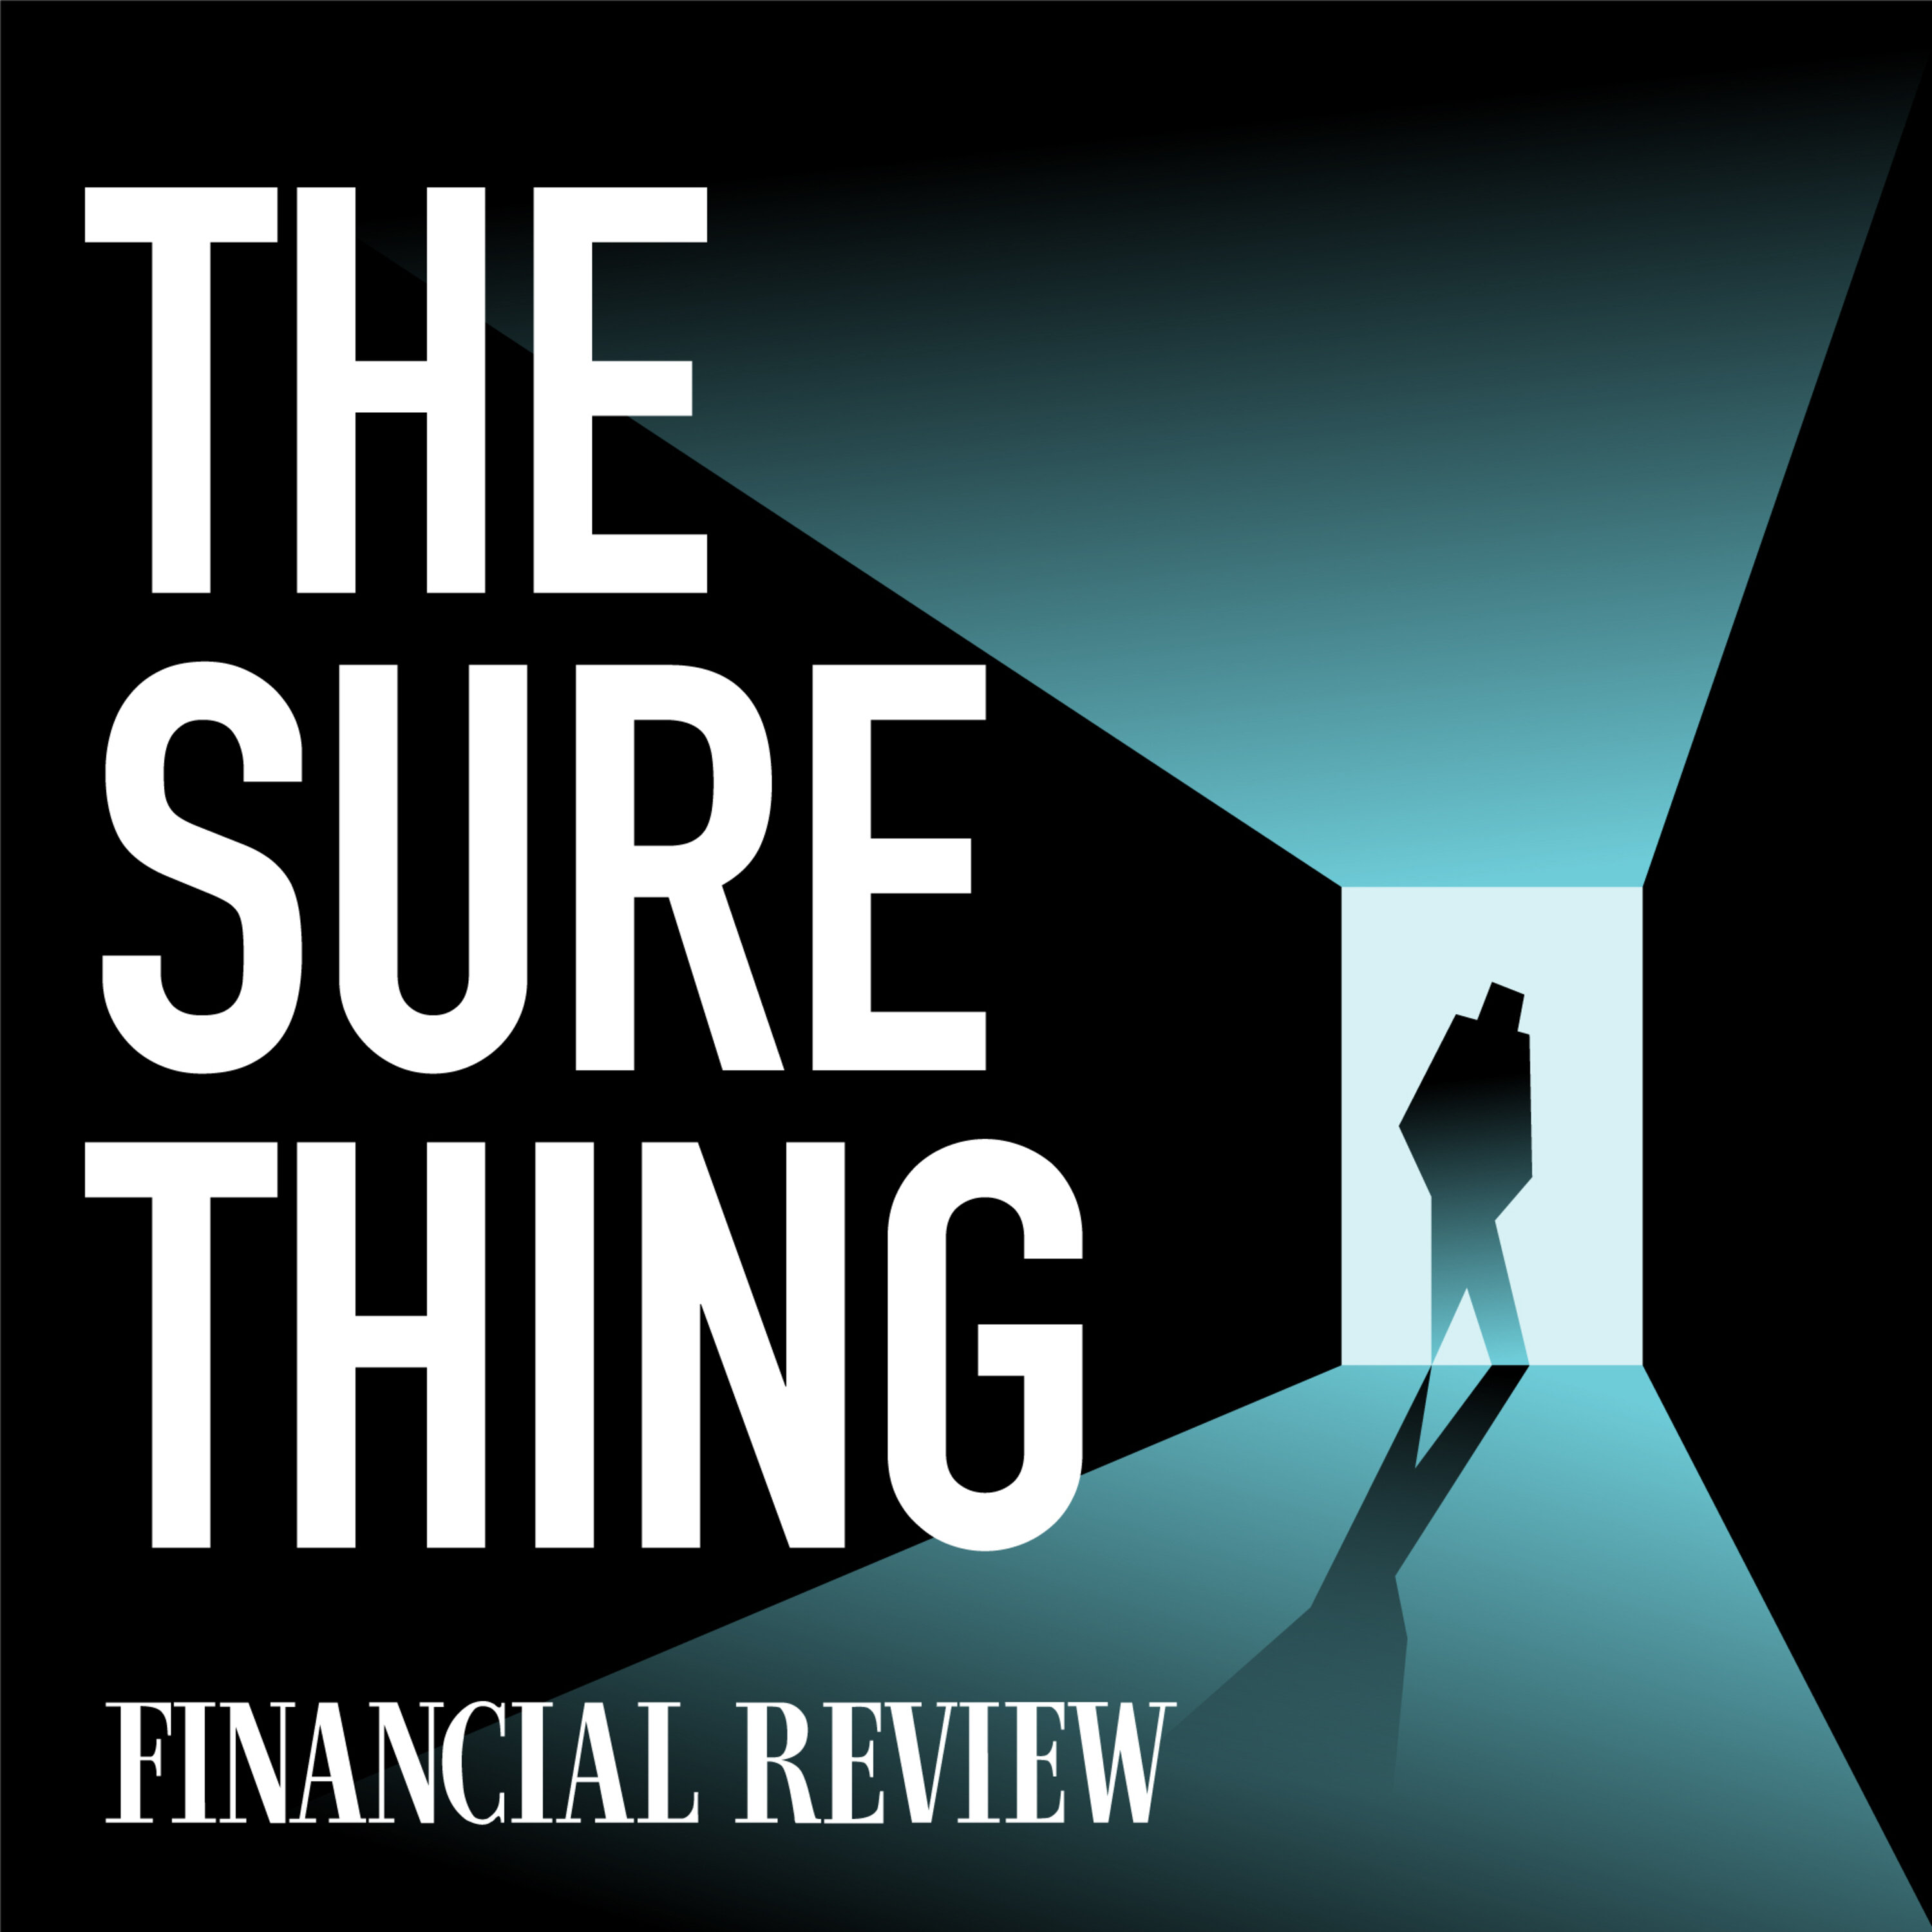 The Sure Thing trailer 2 - premieres Feb 22